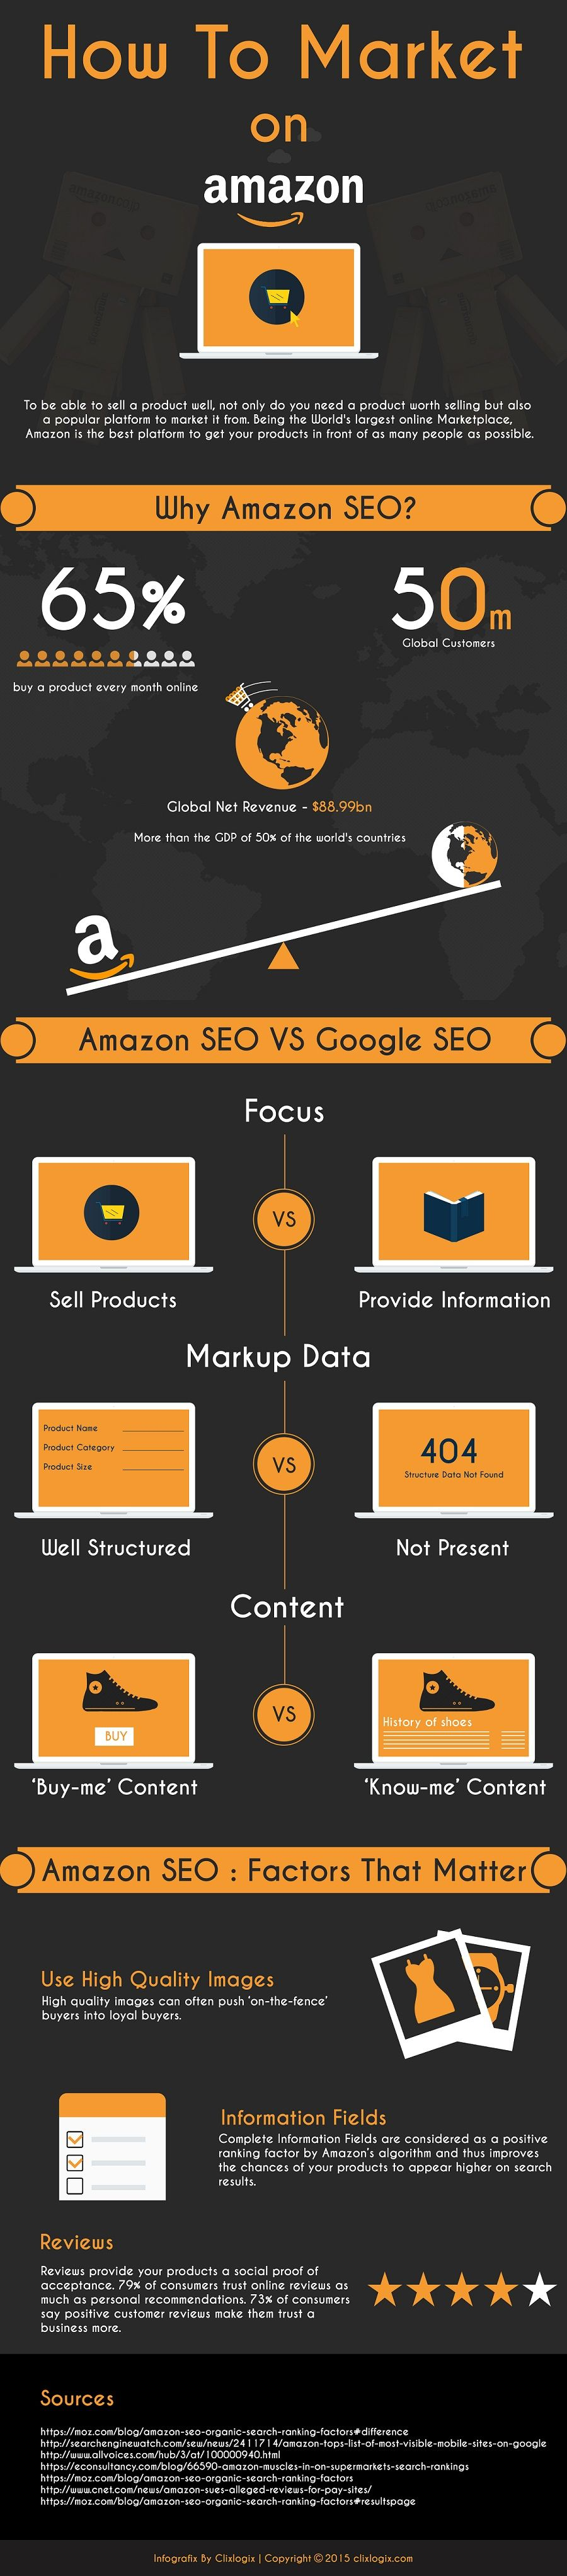 A Comprehensive Amazon SEO Guide for Vendors